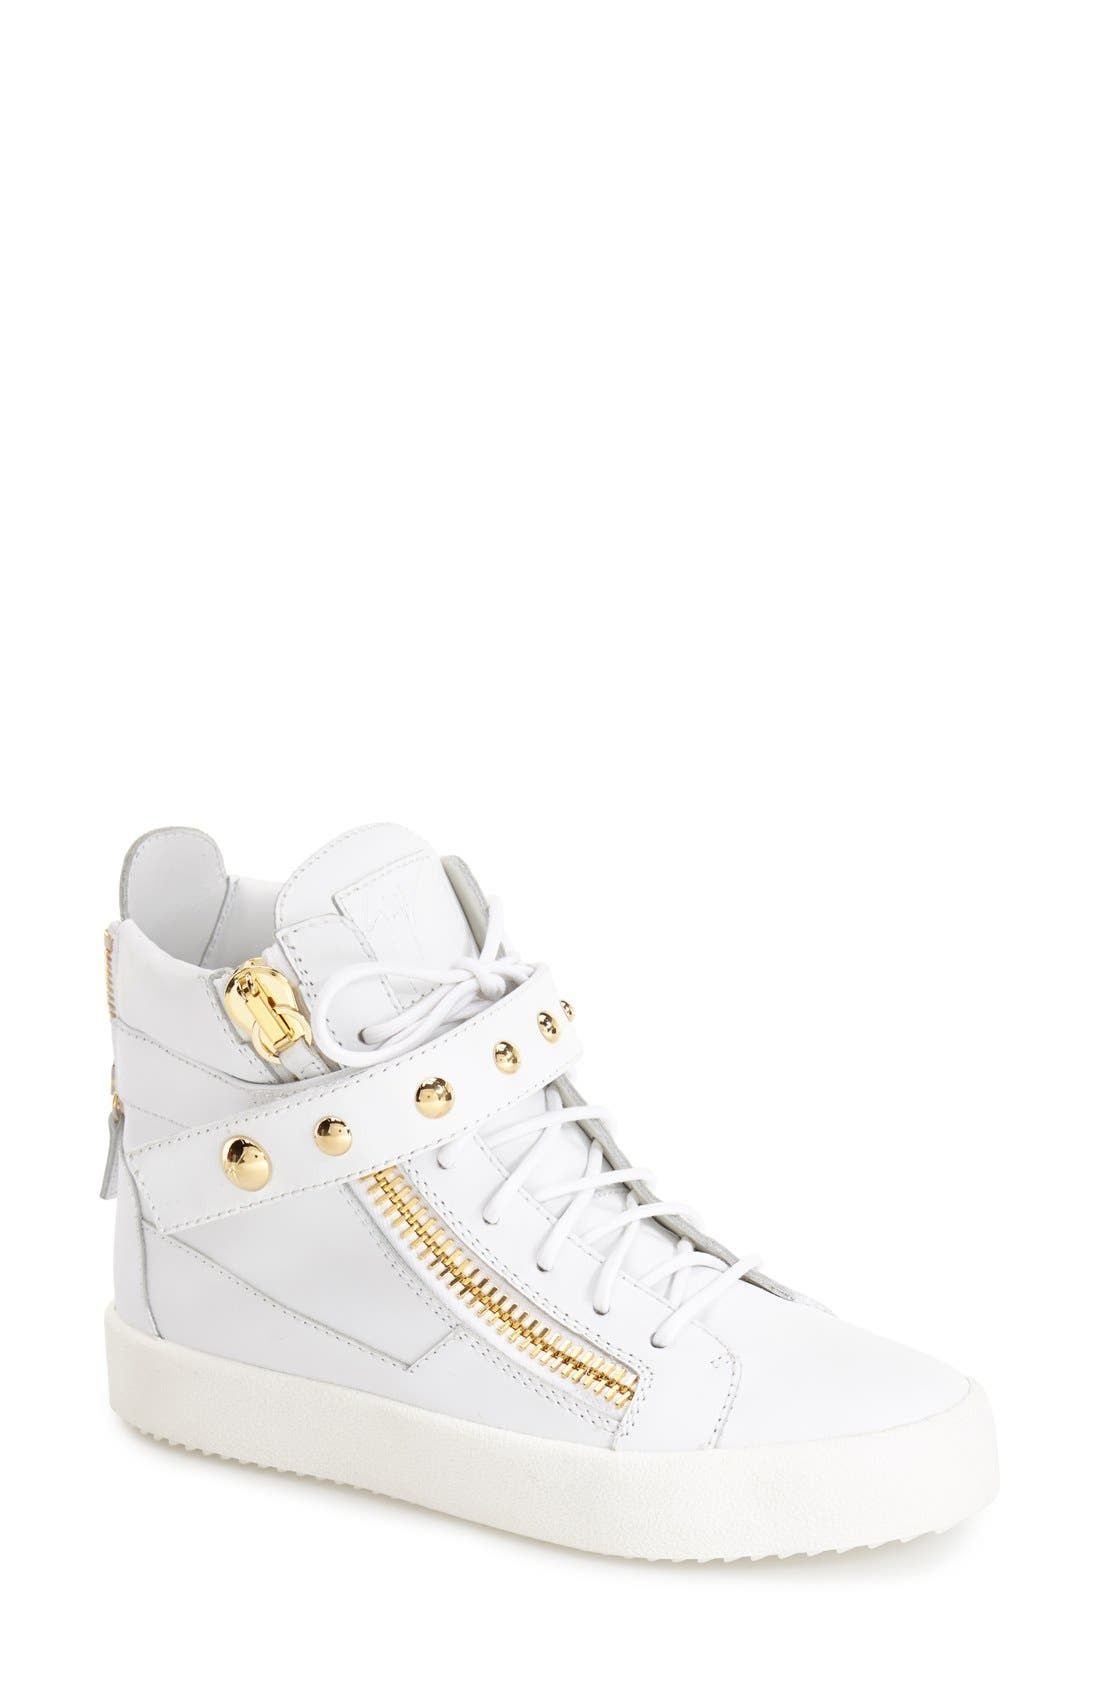 Main Image - Giuseppe Zanotti 'May London' High Top Sneaker (Women)